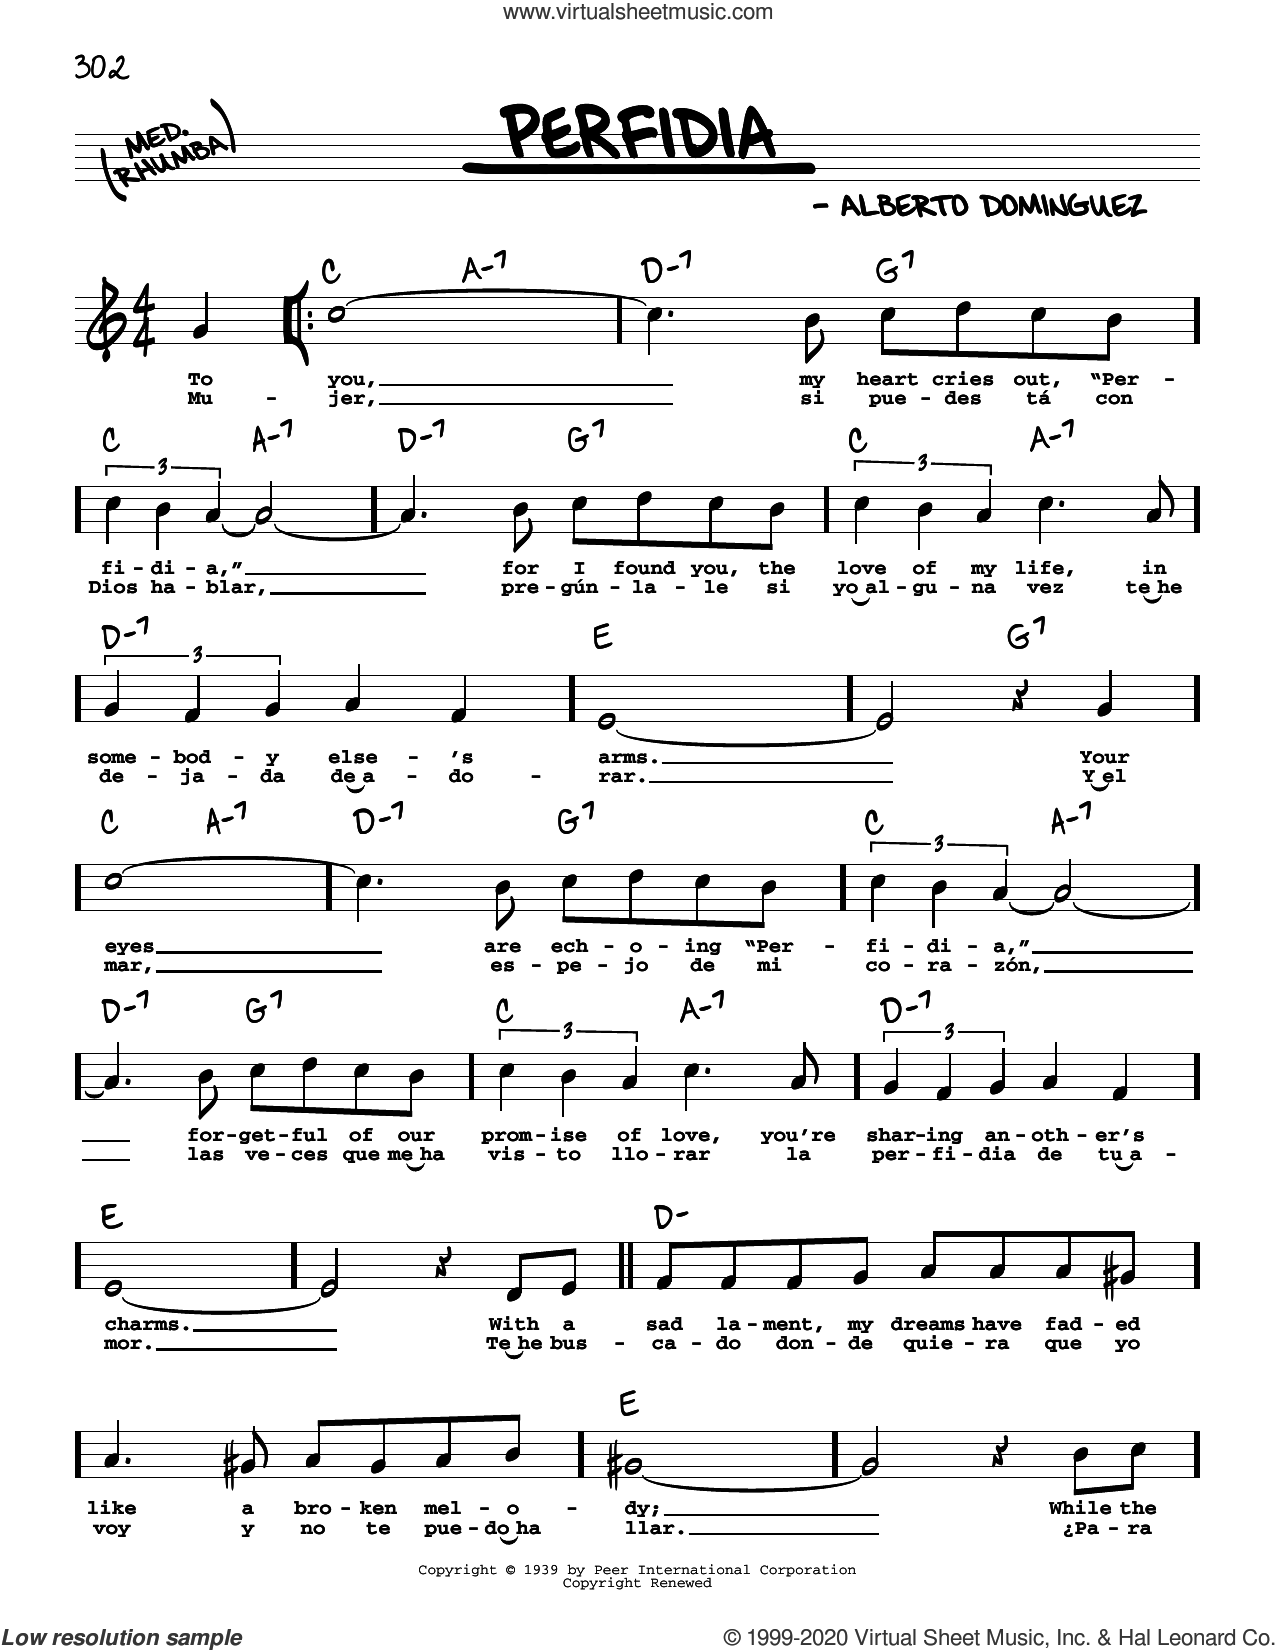 Perfidia (High Voice) sheet music for voice and other instruments (high voice) by The Ventures and Alberto Dominguez, intermediate skill level